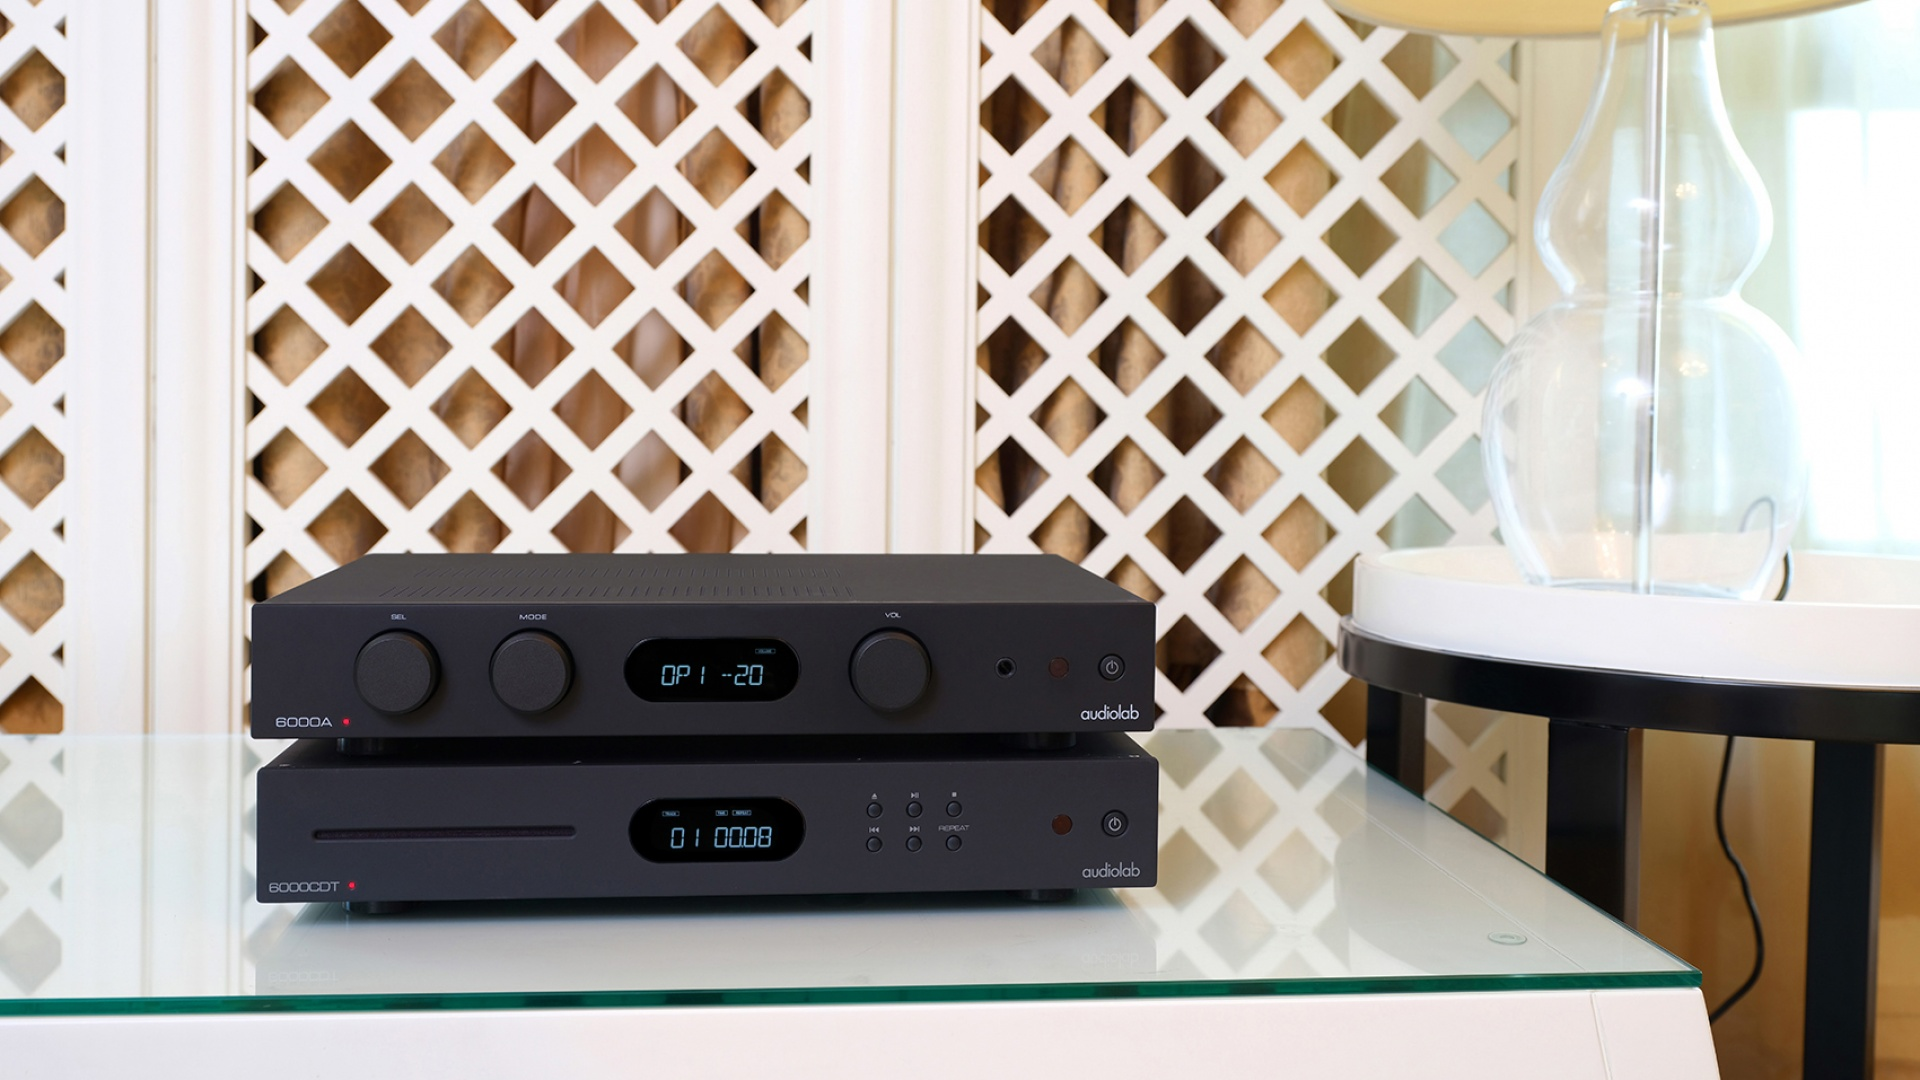 The Audiolab 6000A amplifier alongside the 6000CDT CD player